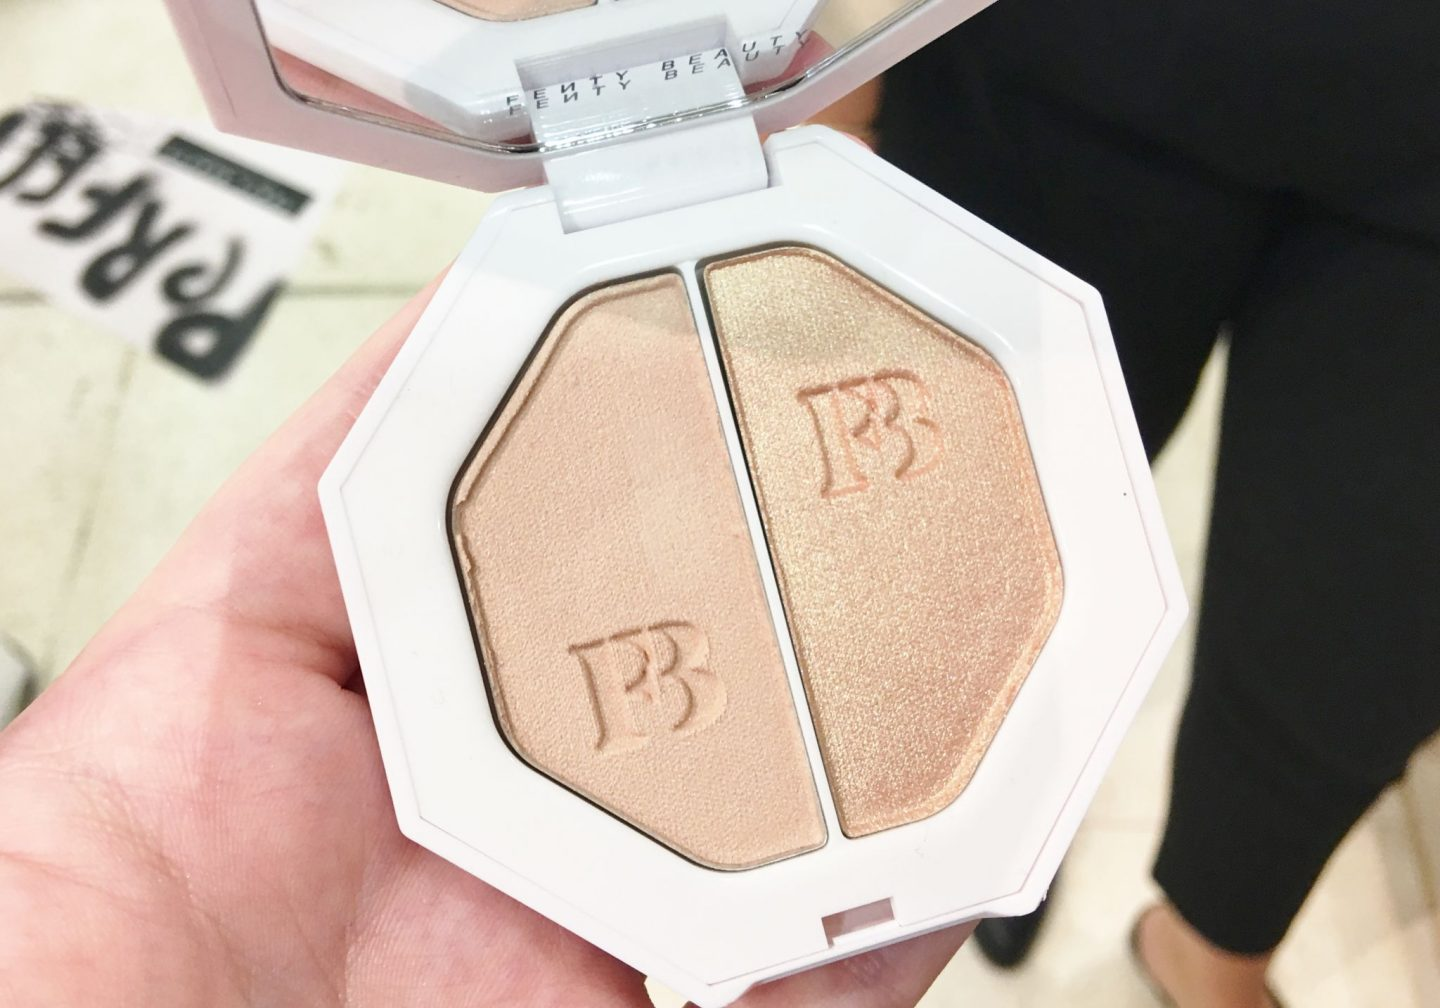 Fenty Beauty Killawatt Freestyle Highlighter Duo in Mean Mny Hustle Bby